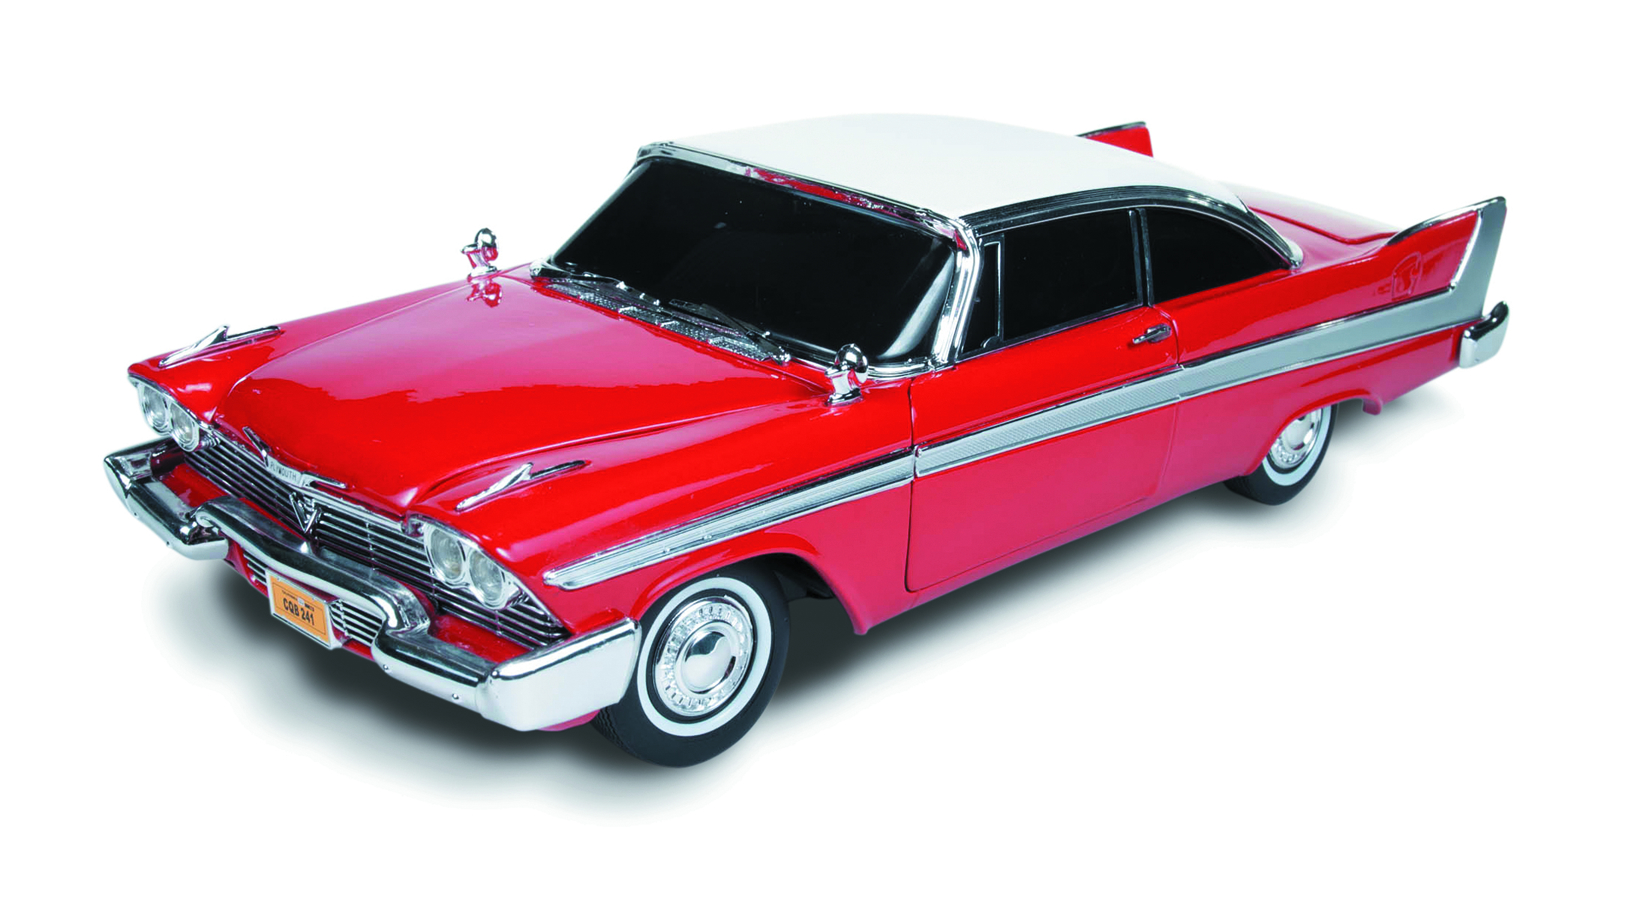 CHRISTINE 58 PLYMOUTH FURY 1/18 DIE-CAST VEHICLE